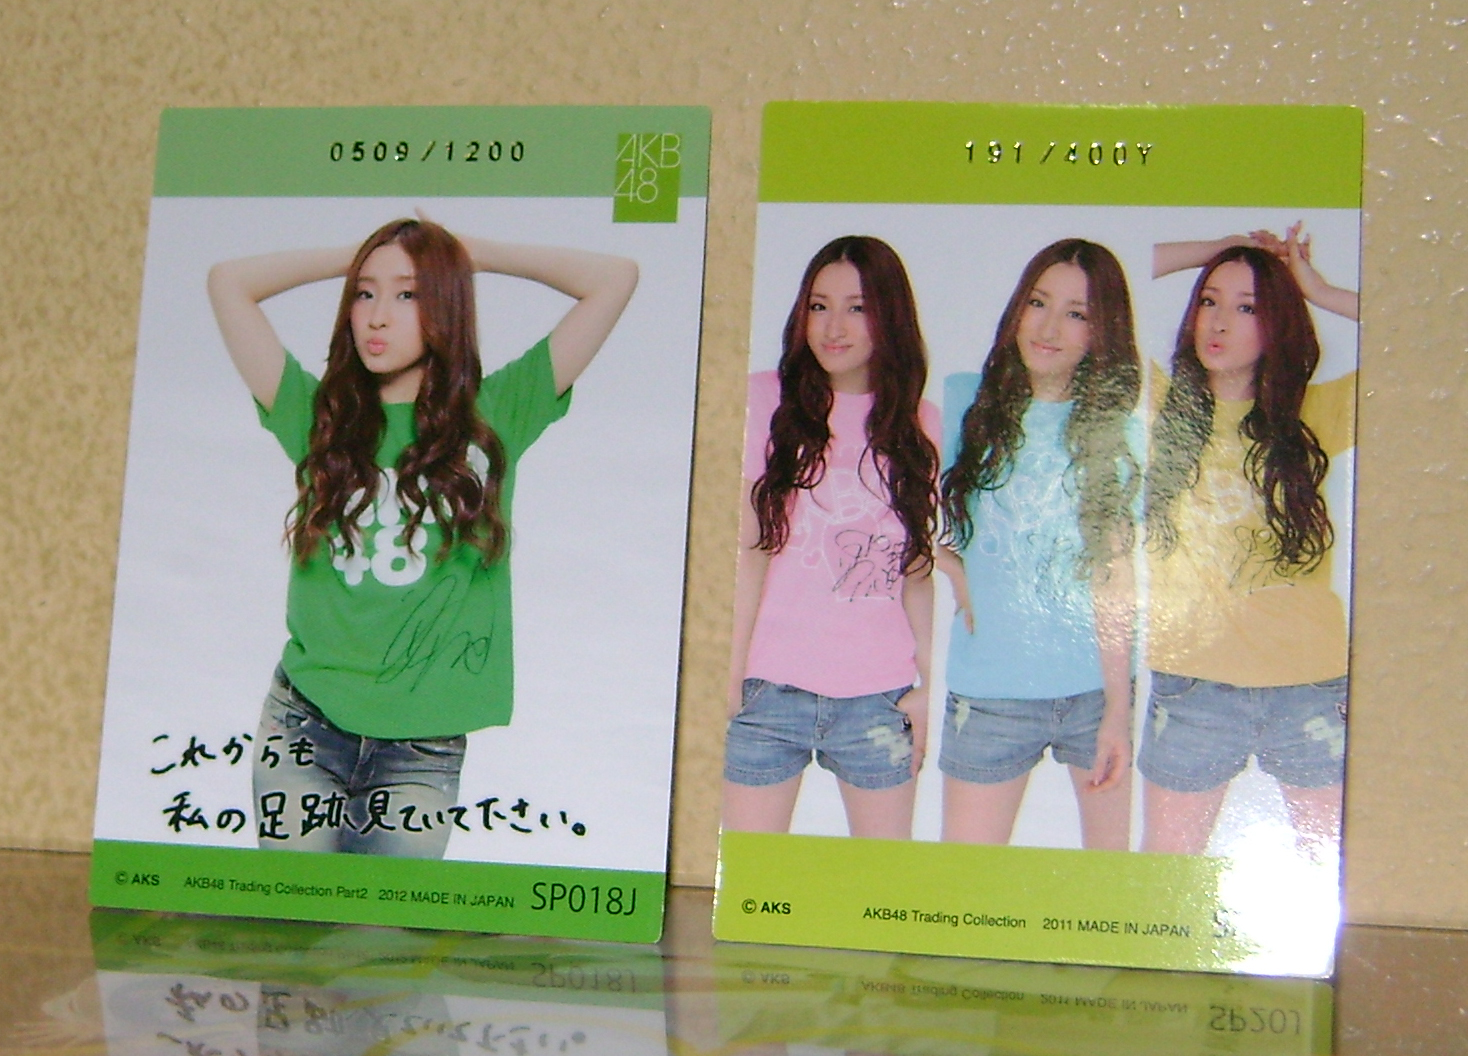 Ayaka swatch cards 2 AKB48, A Musical Collection; Part 5!